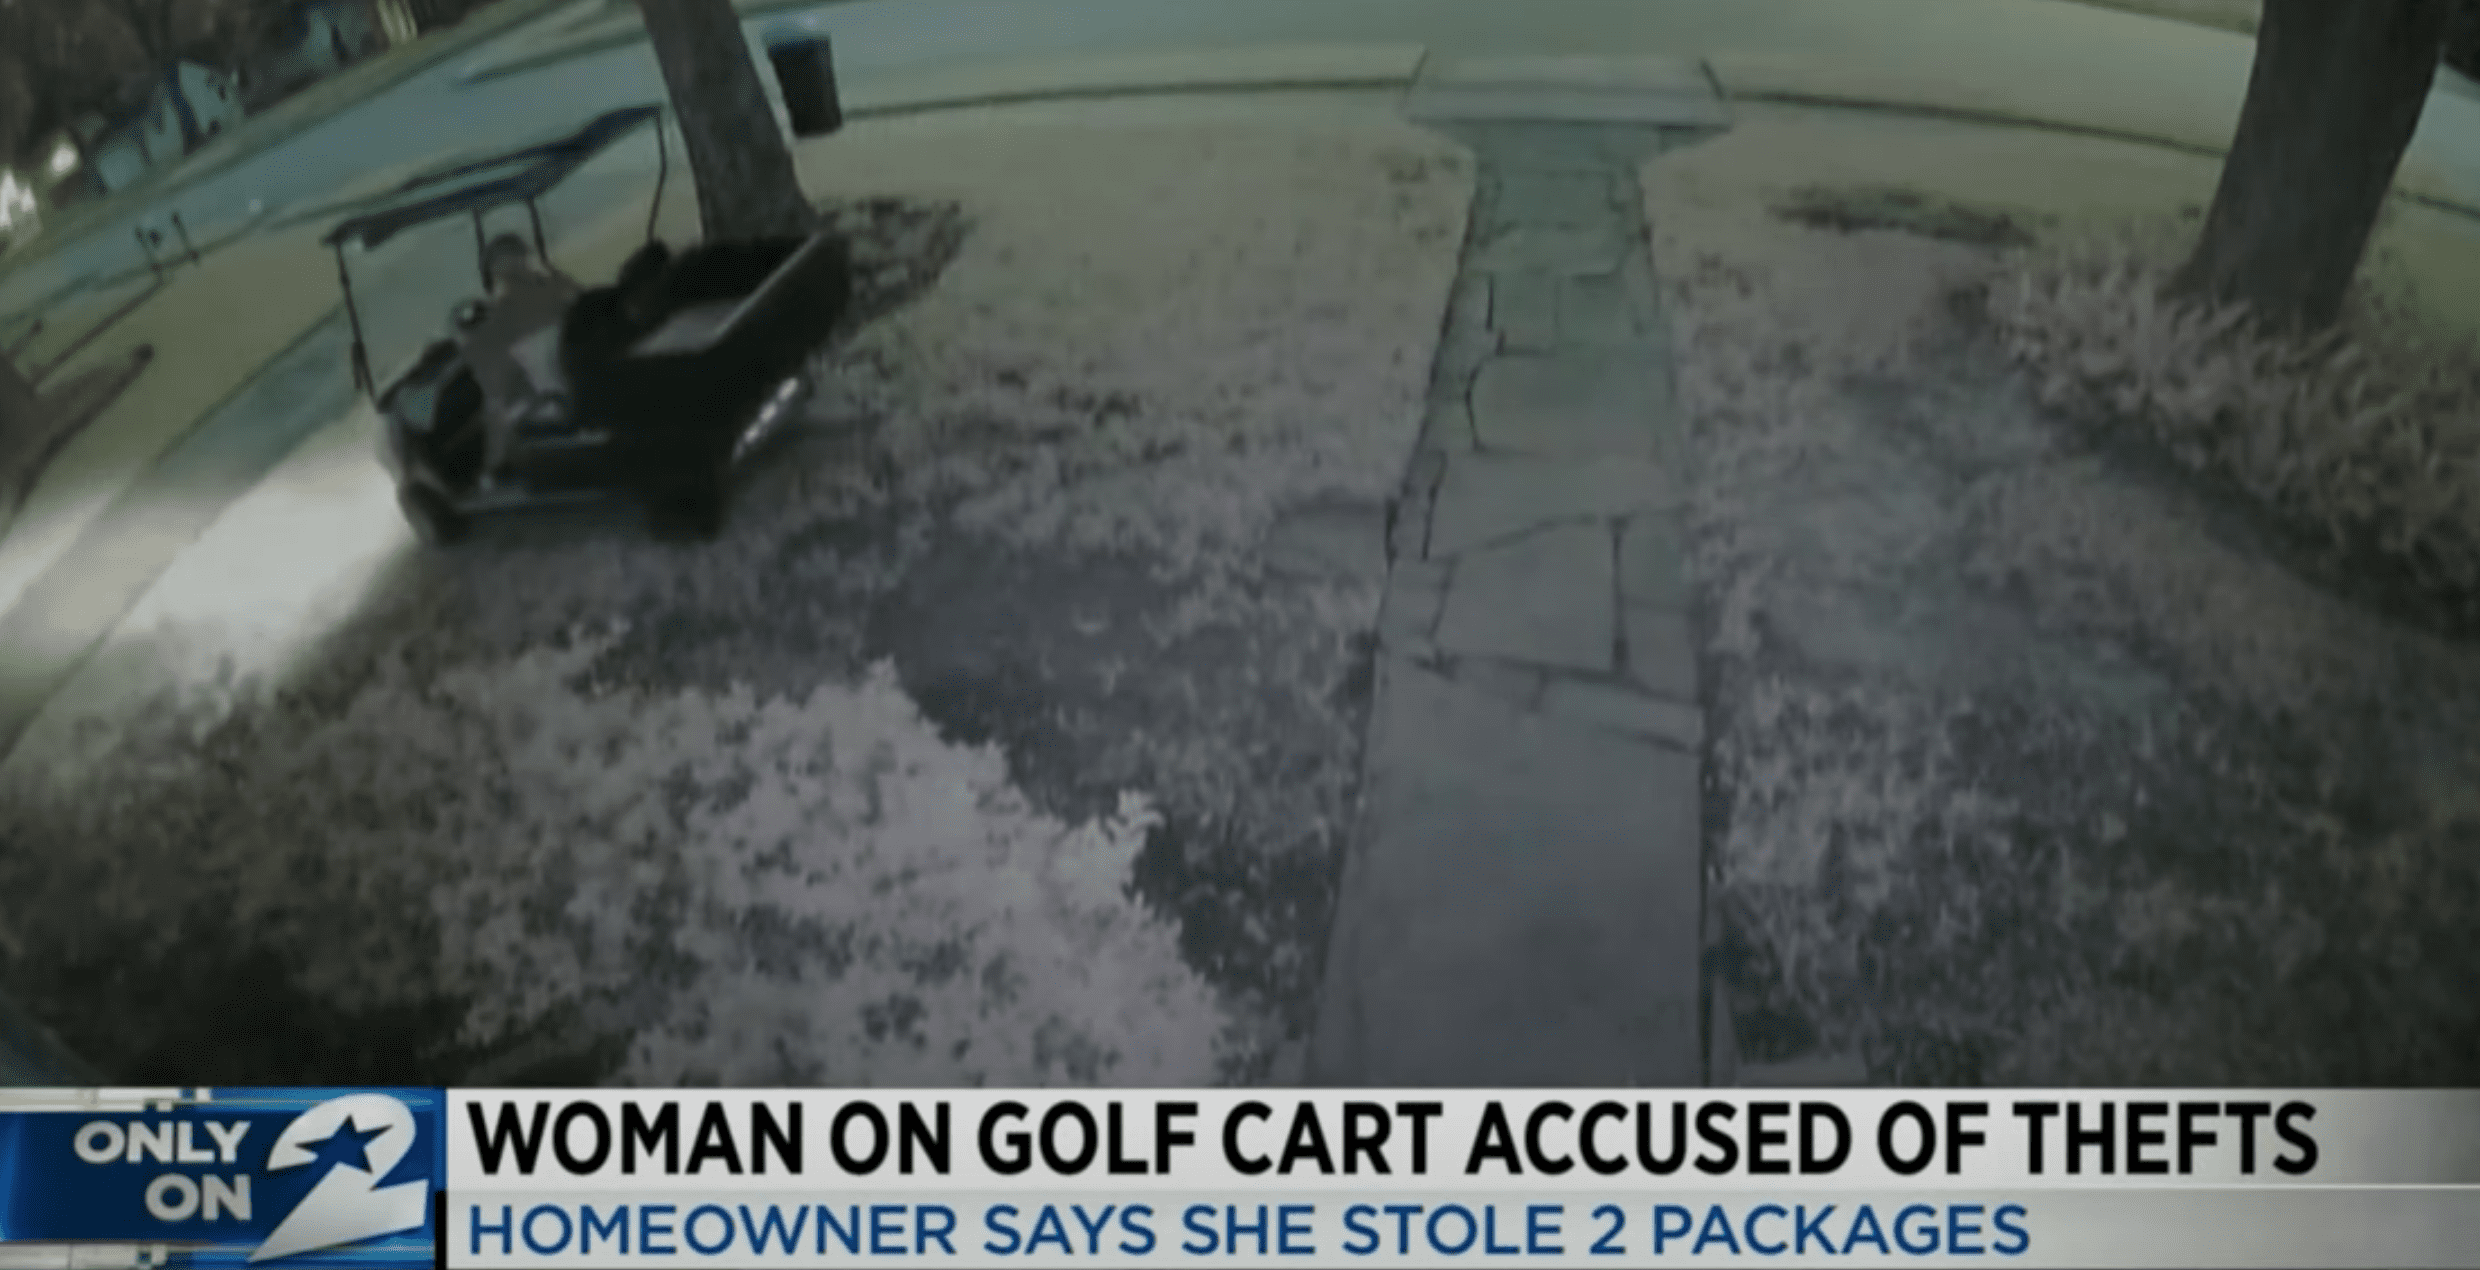 The alleged porch pirate is seen as she takes off with the packages in her golf cart | Photo: Youtube/KPRC 2 Click2Houston